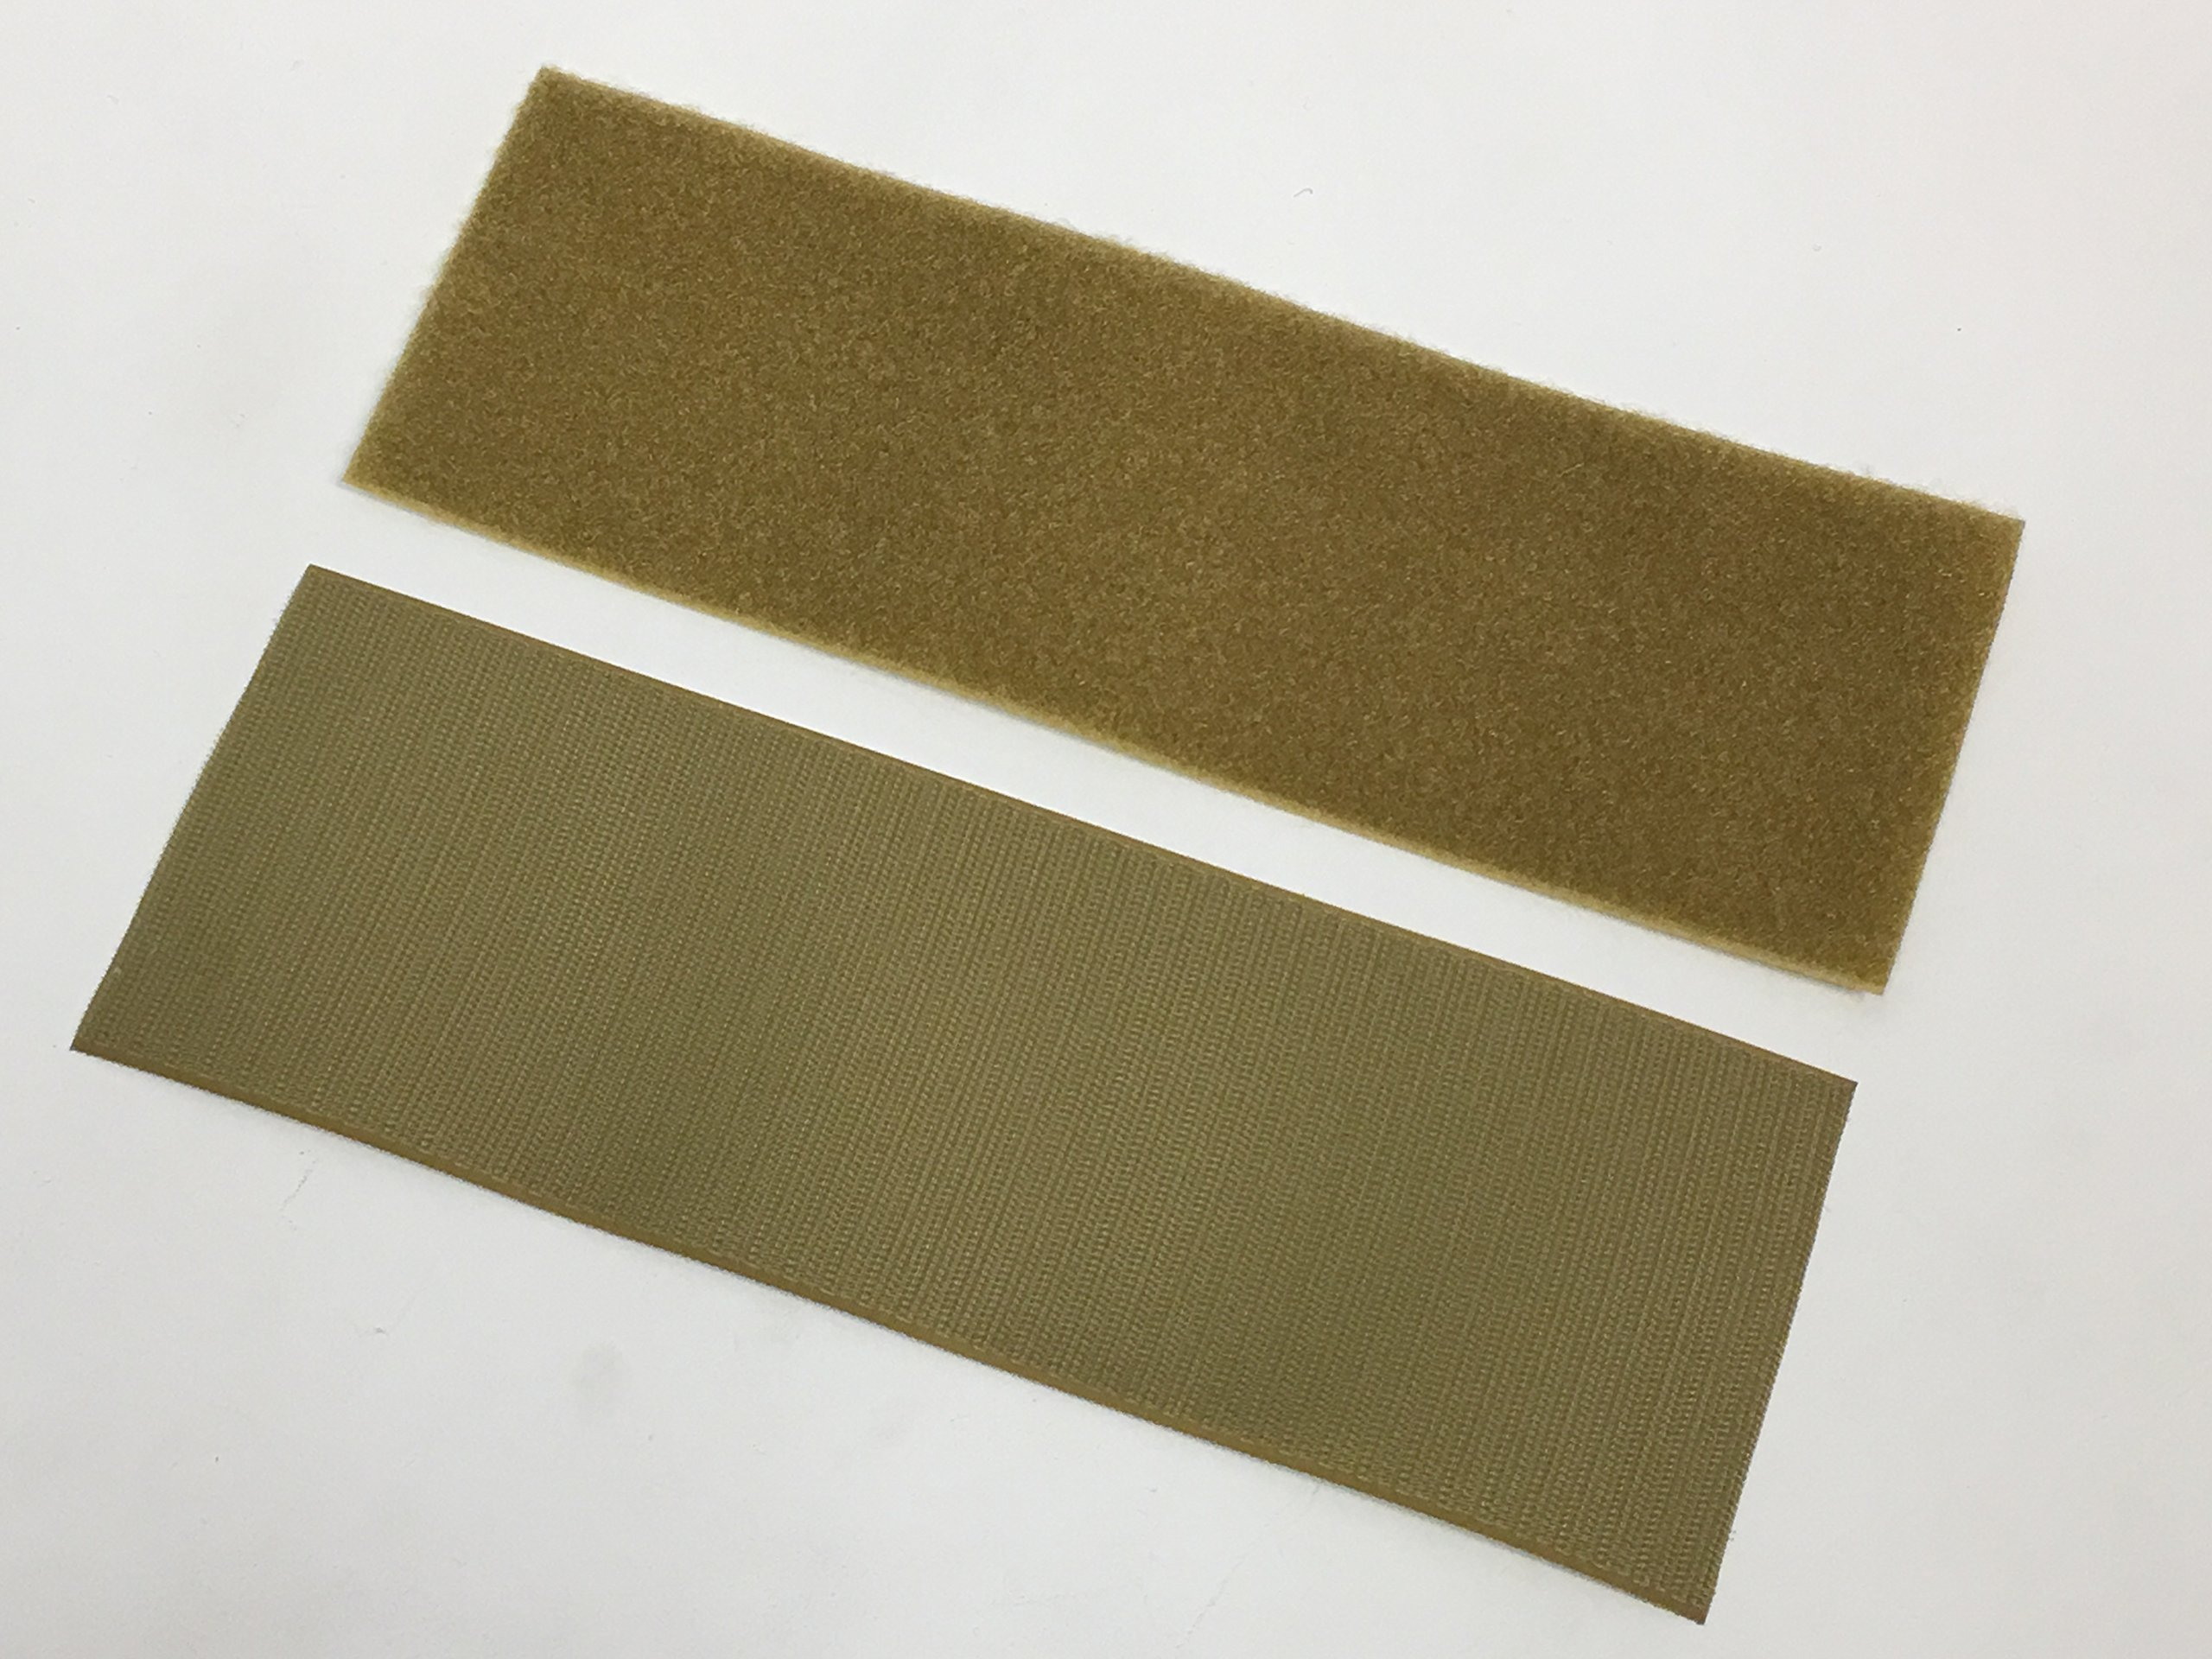 Adhesive  Backed Mil Spec Military Green VELCRO® Brand HOOK Fastener